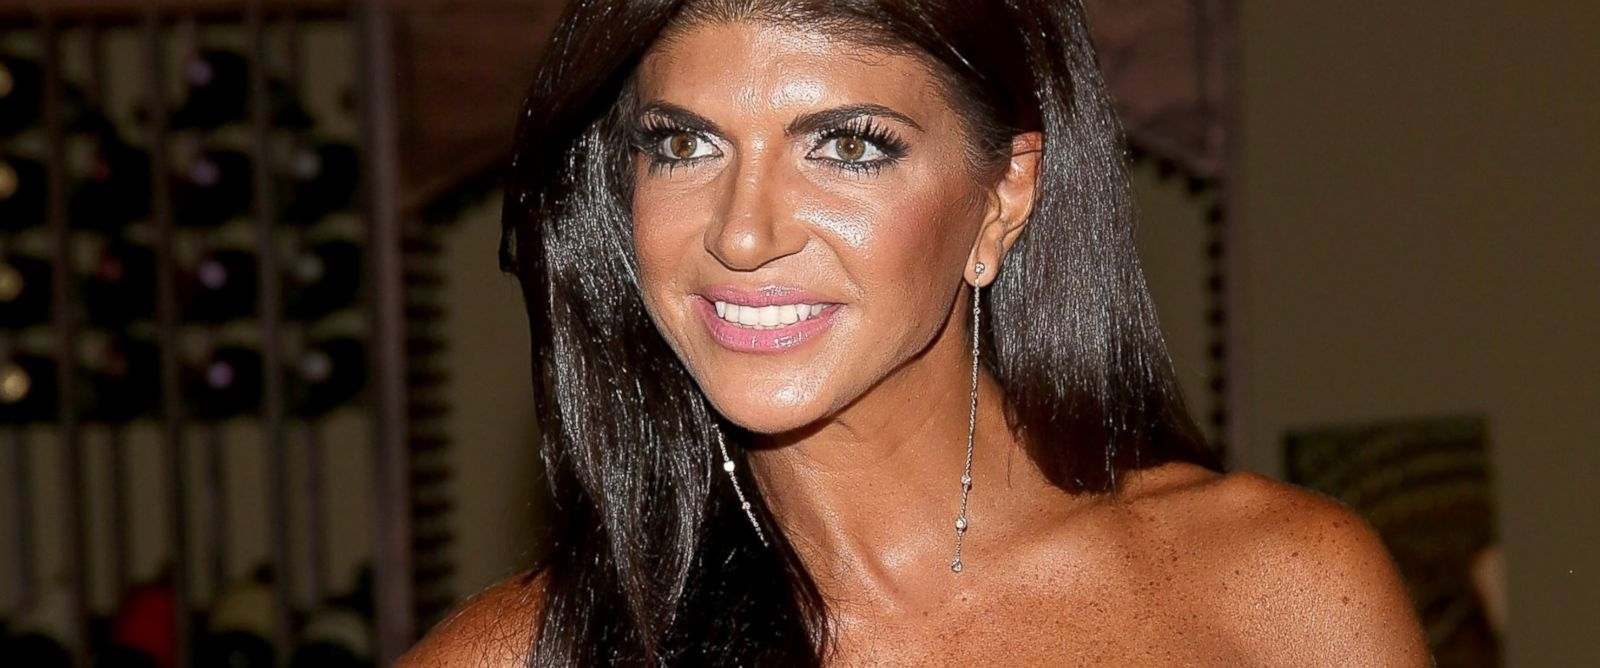 """PHOTO: Teresa Giudice attends the """"Real Housewives Of New Jersey"""" Season Six Premiere Party, July 13, 2014, in Parsippany, N.J."""